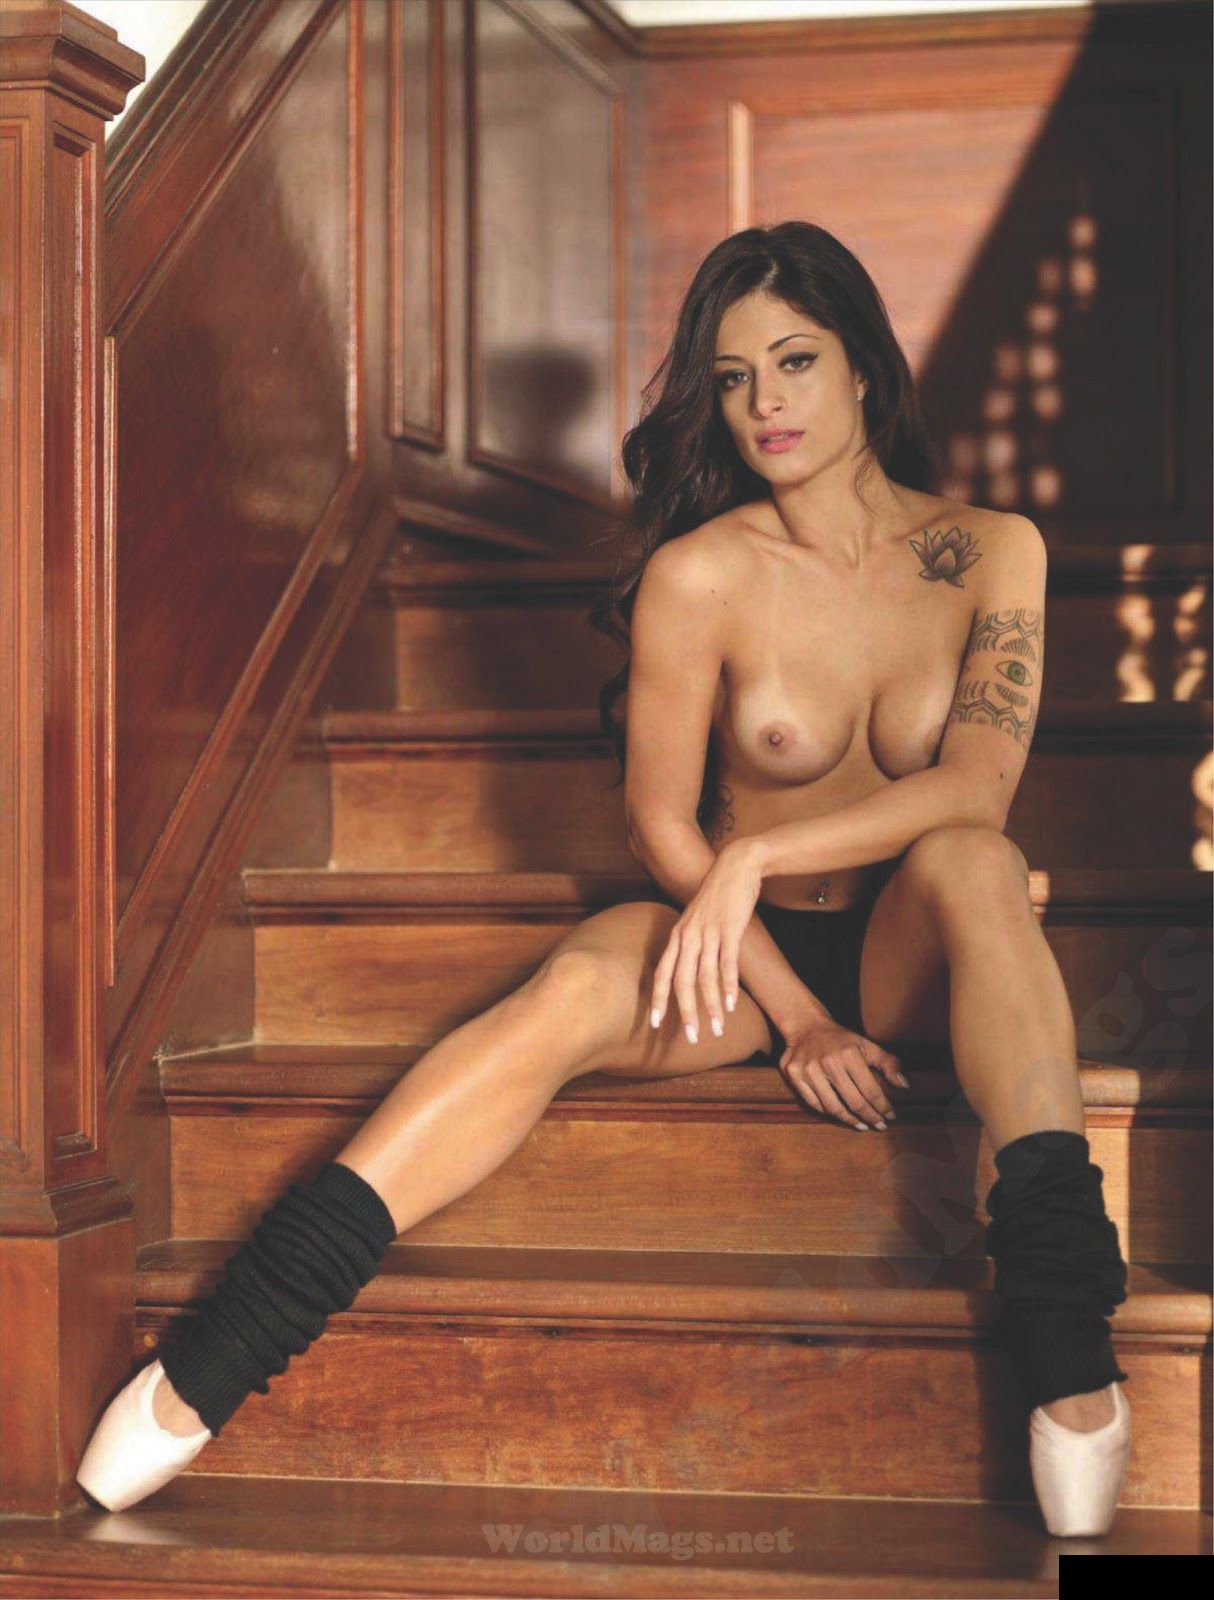 Aline Riscado Playboy Fotos showing xxx images for playboy aline riscado xxx | www